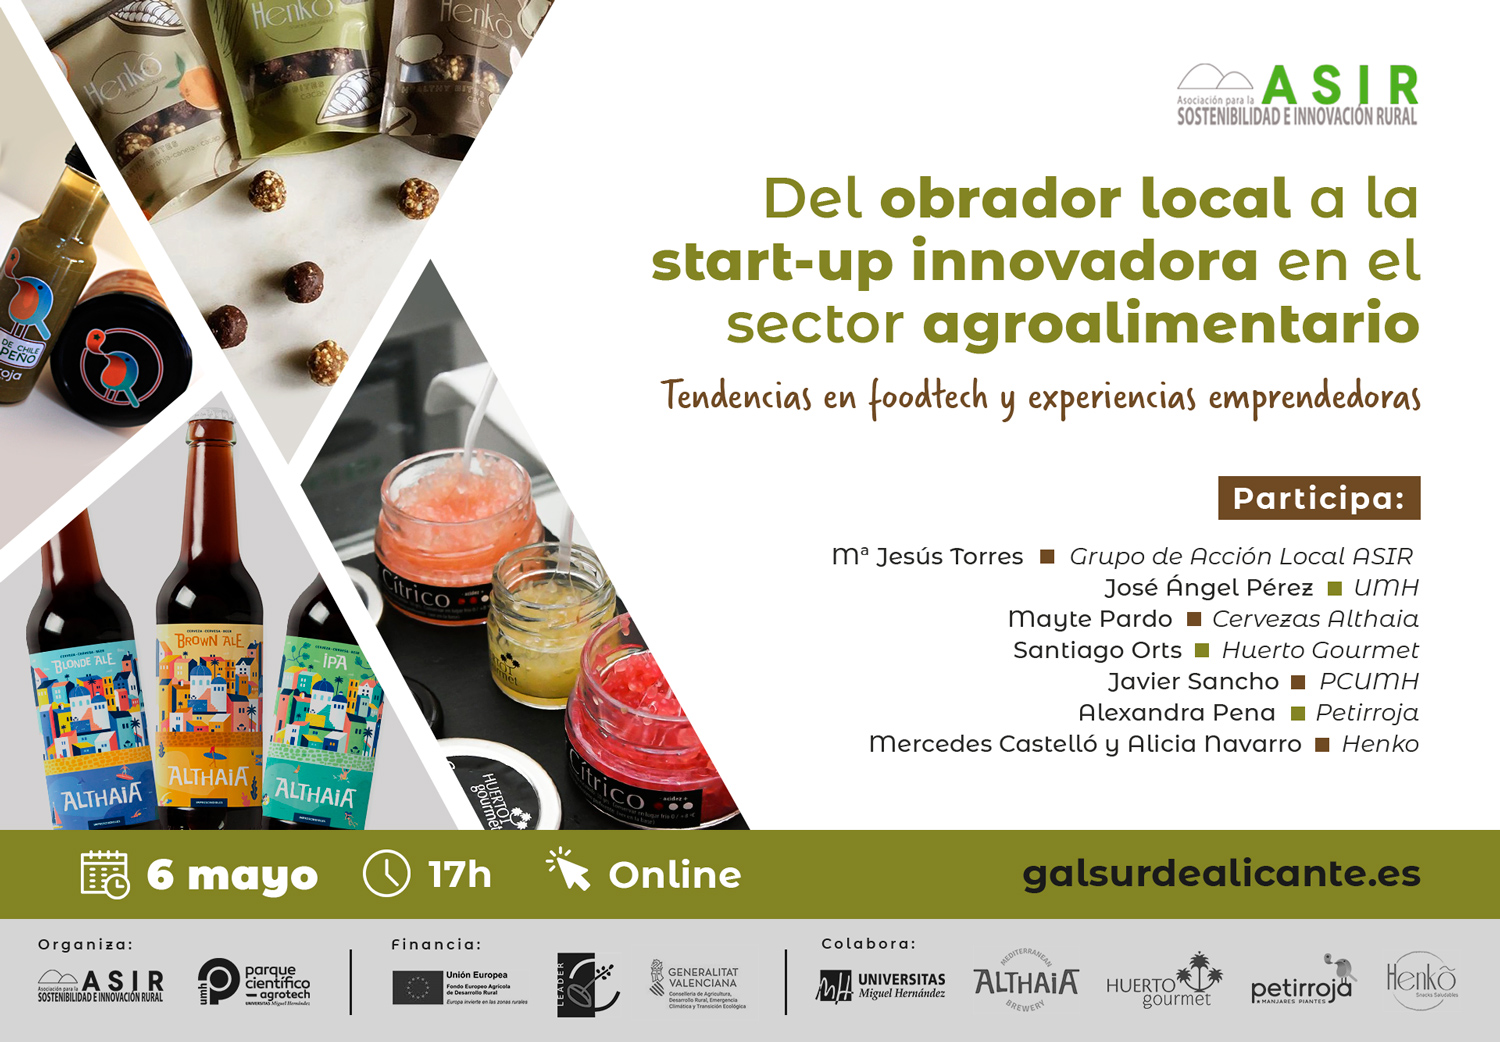 Del obrador local a la start-up innovadora en el sector agroalimentario